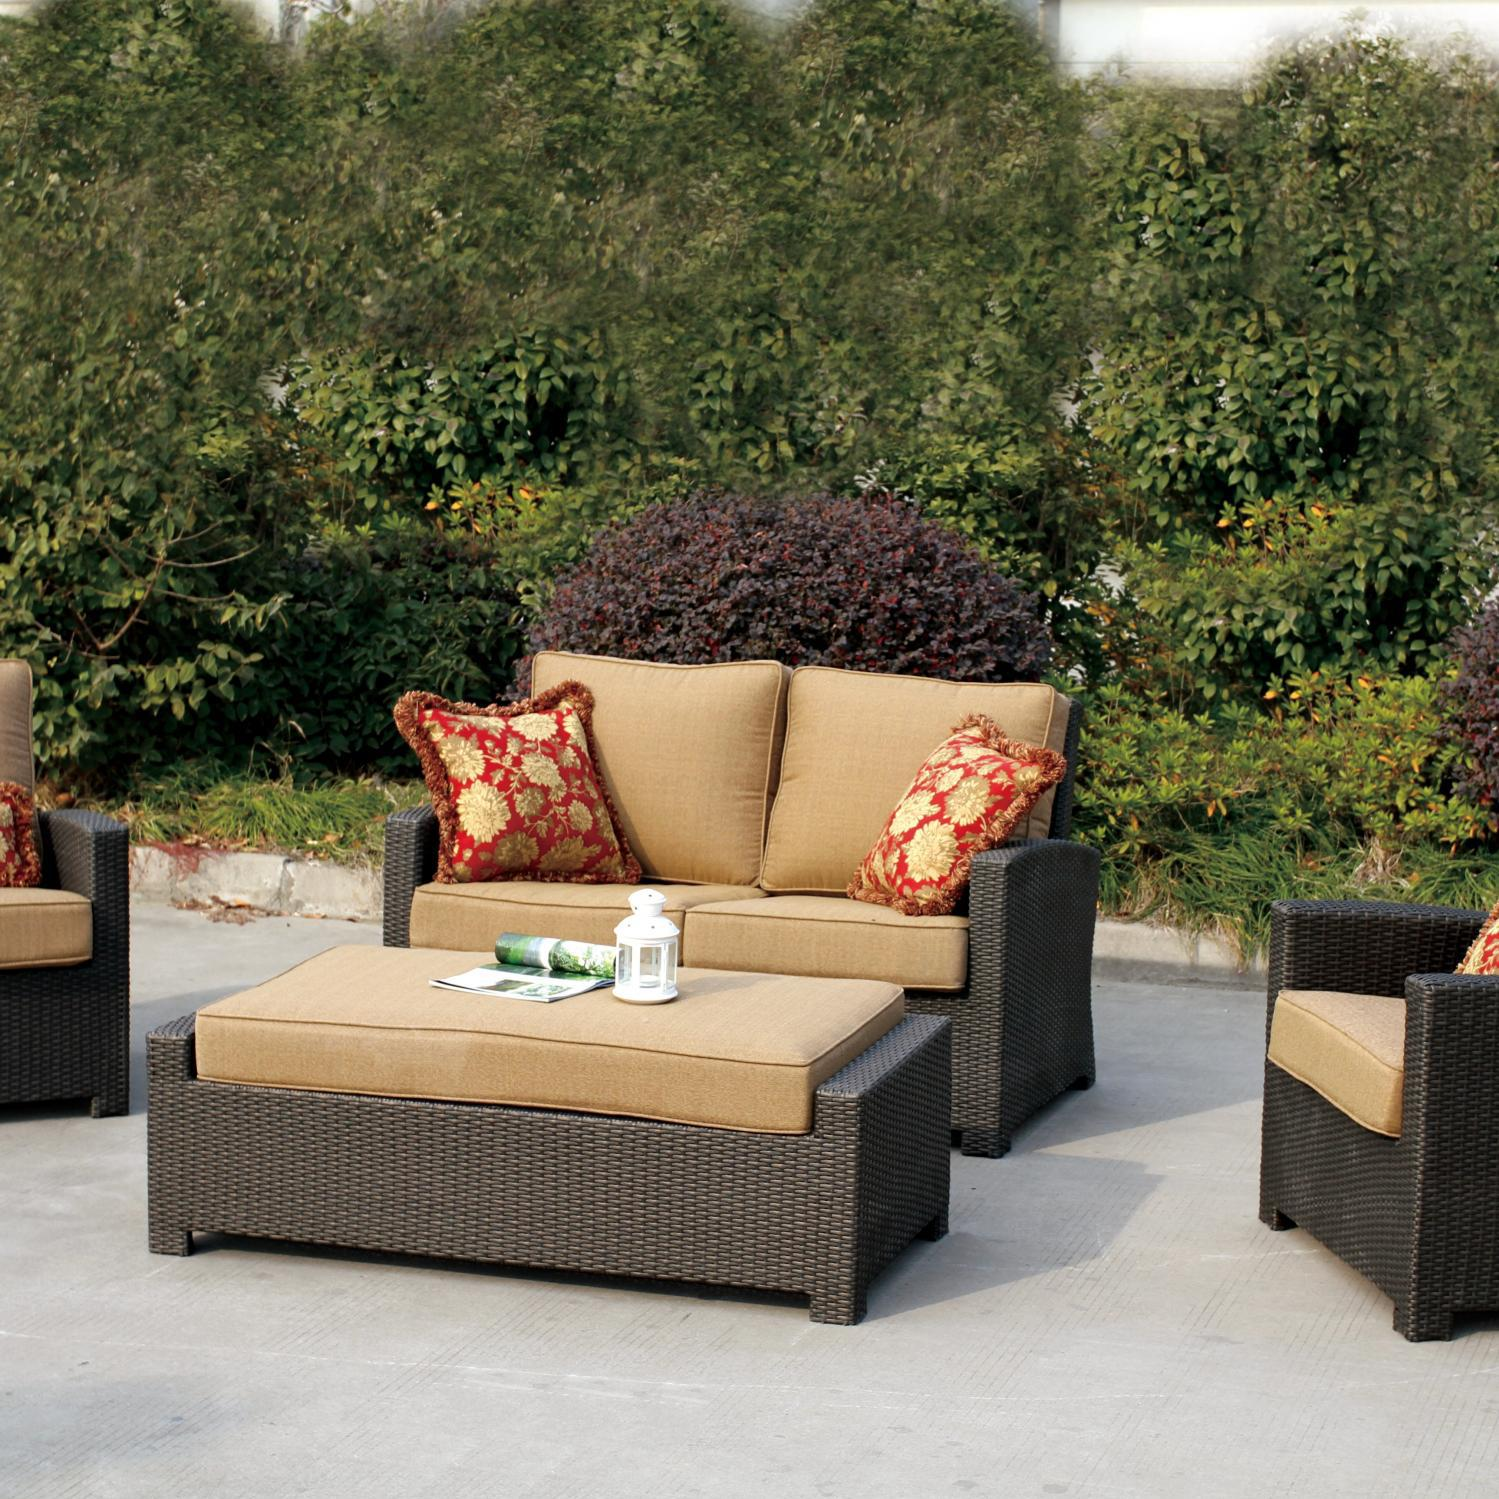 Darlee Vienna 4 Piece Resin Wicker Patio Seating Set